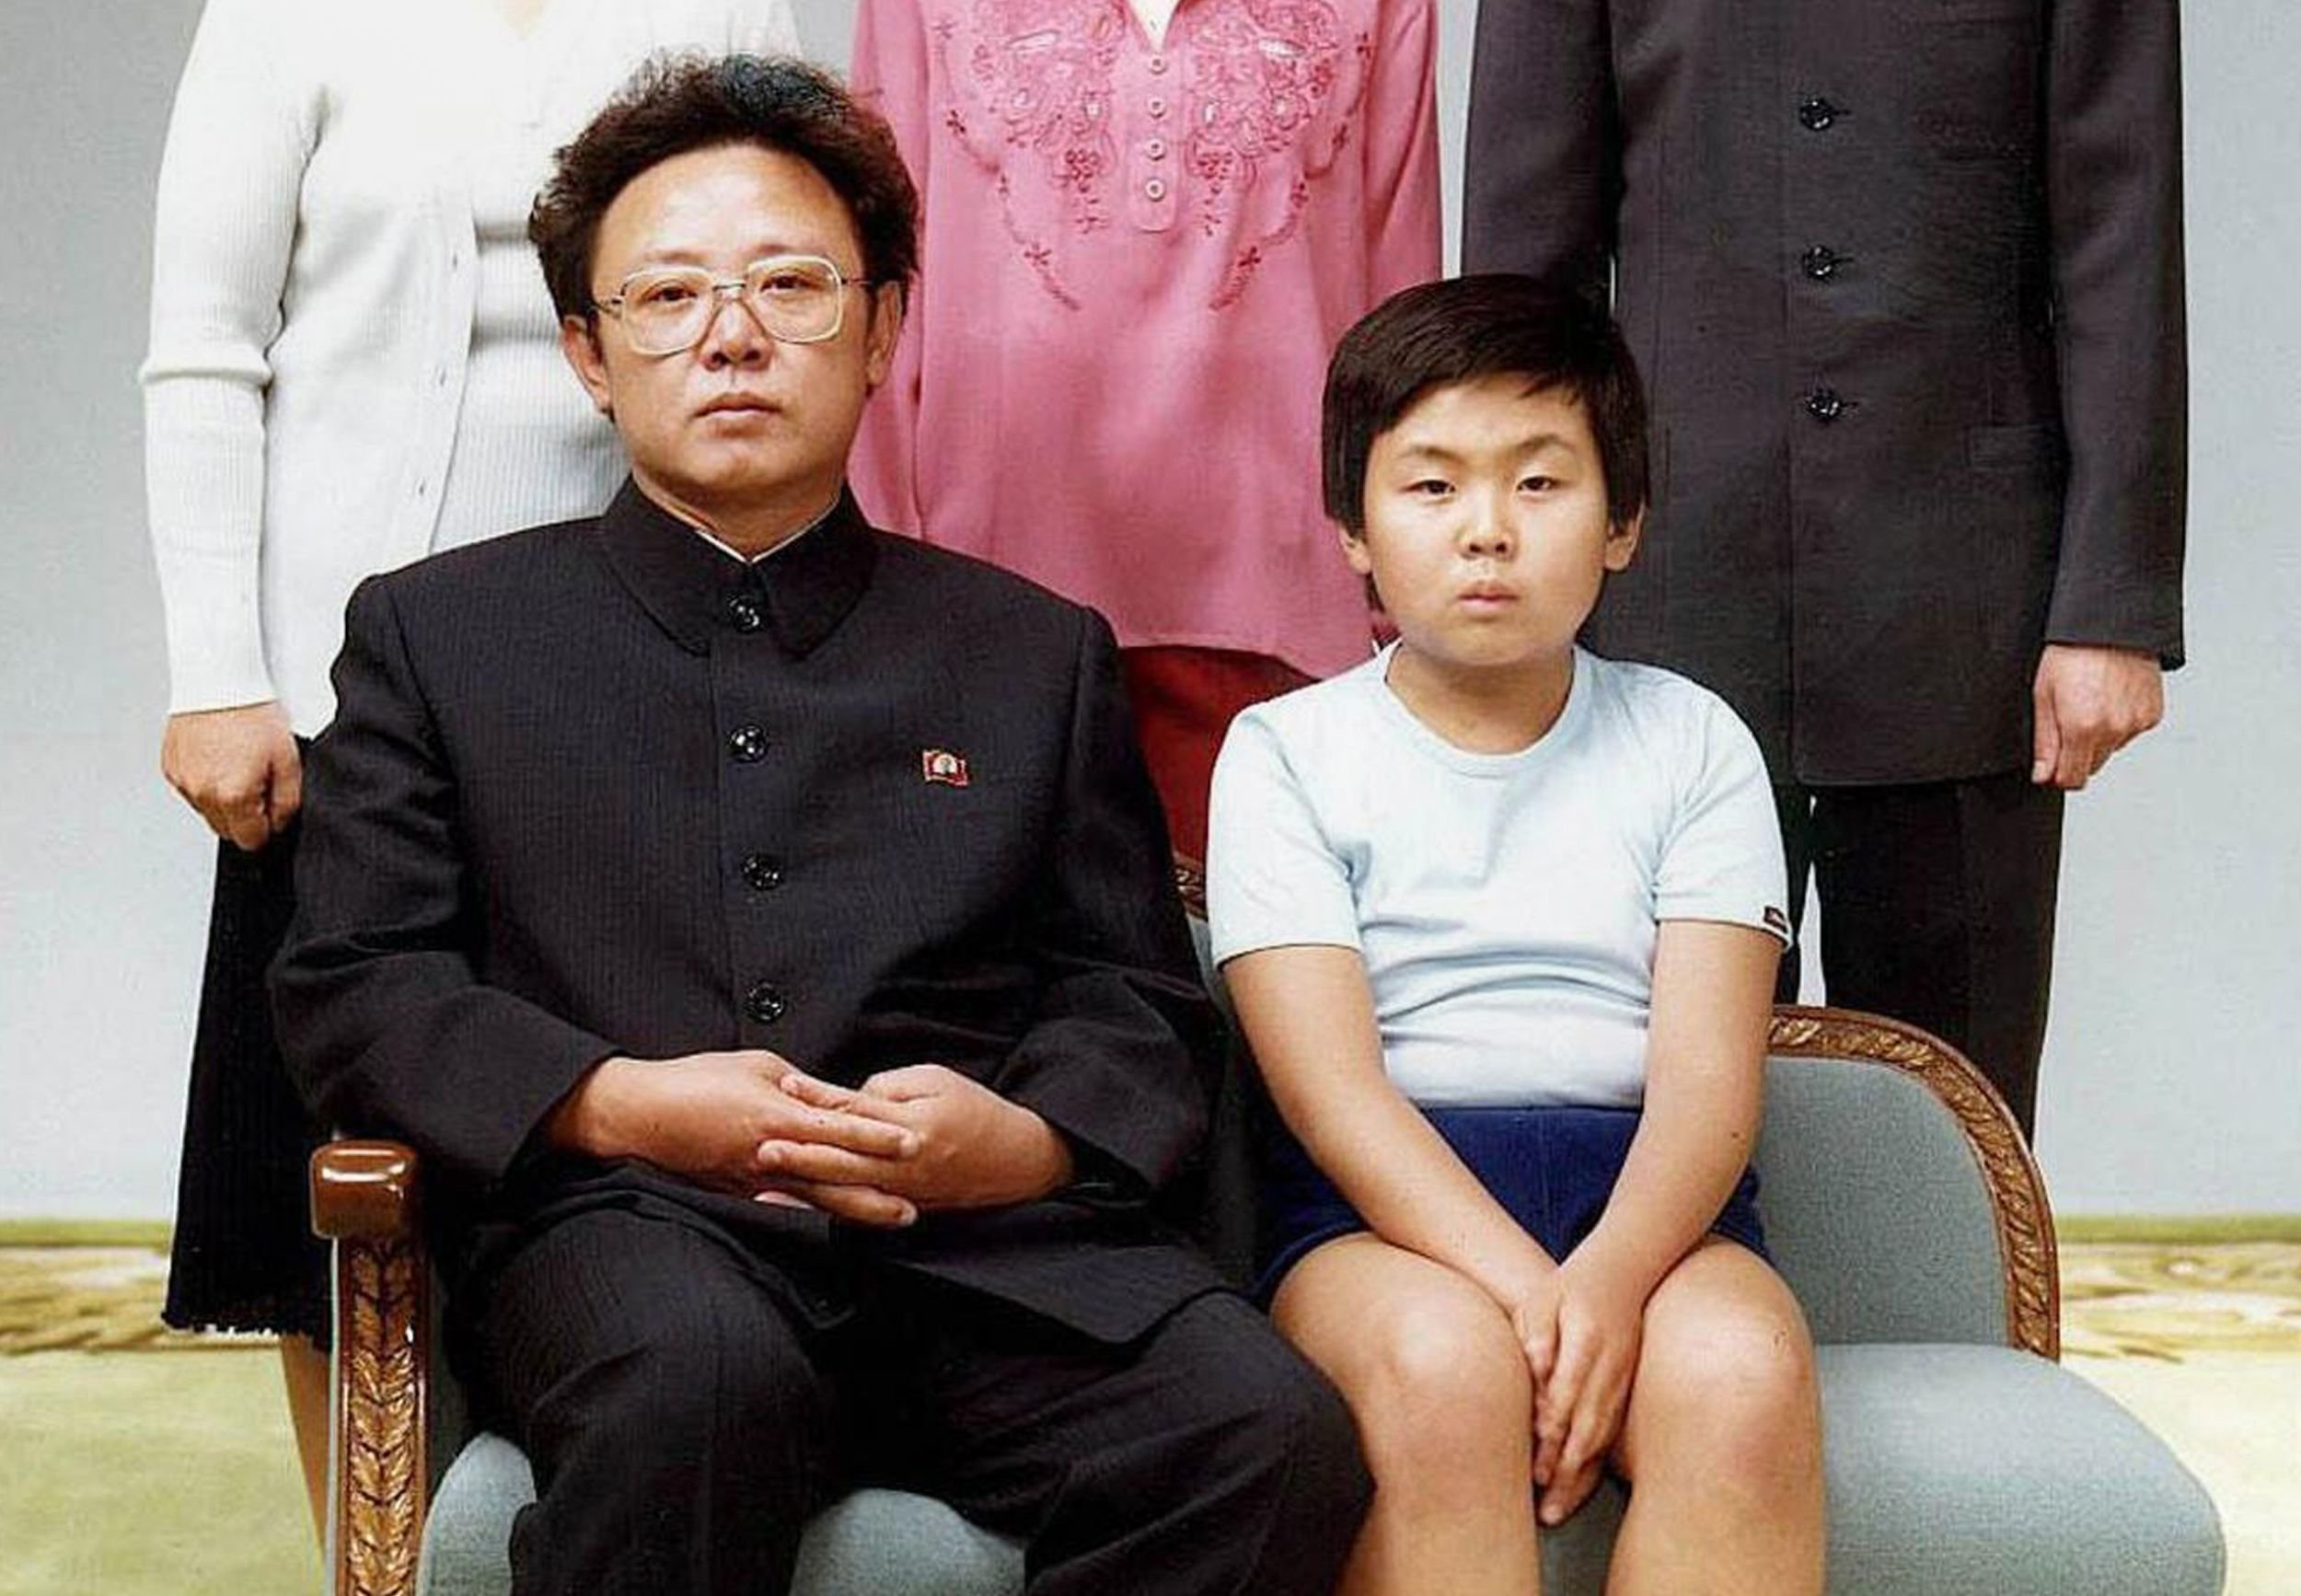 The eldest son, Kim Jong-il, said that he did not want to inherit power in the DPRK January 25, 2009 4